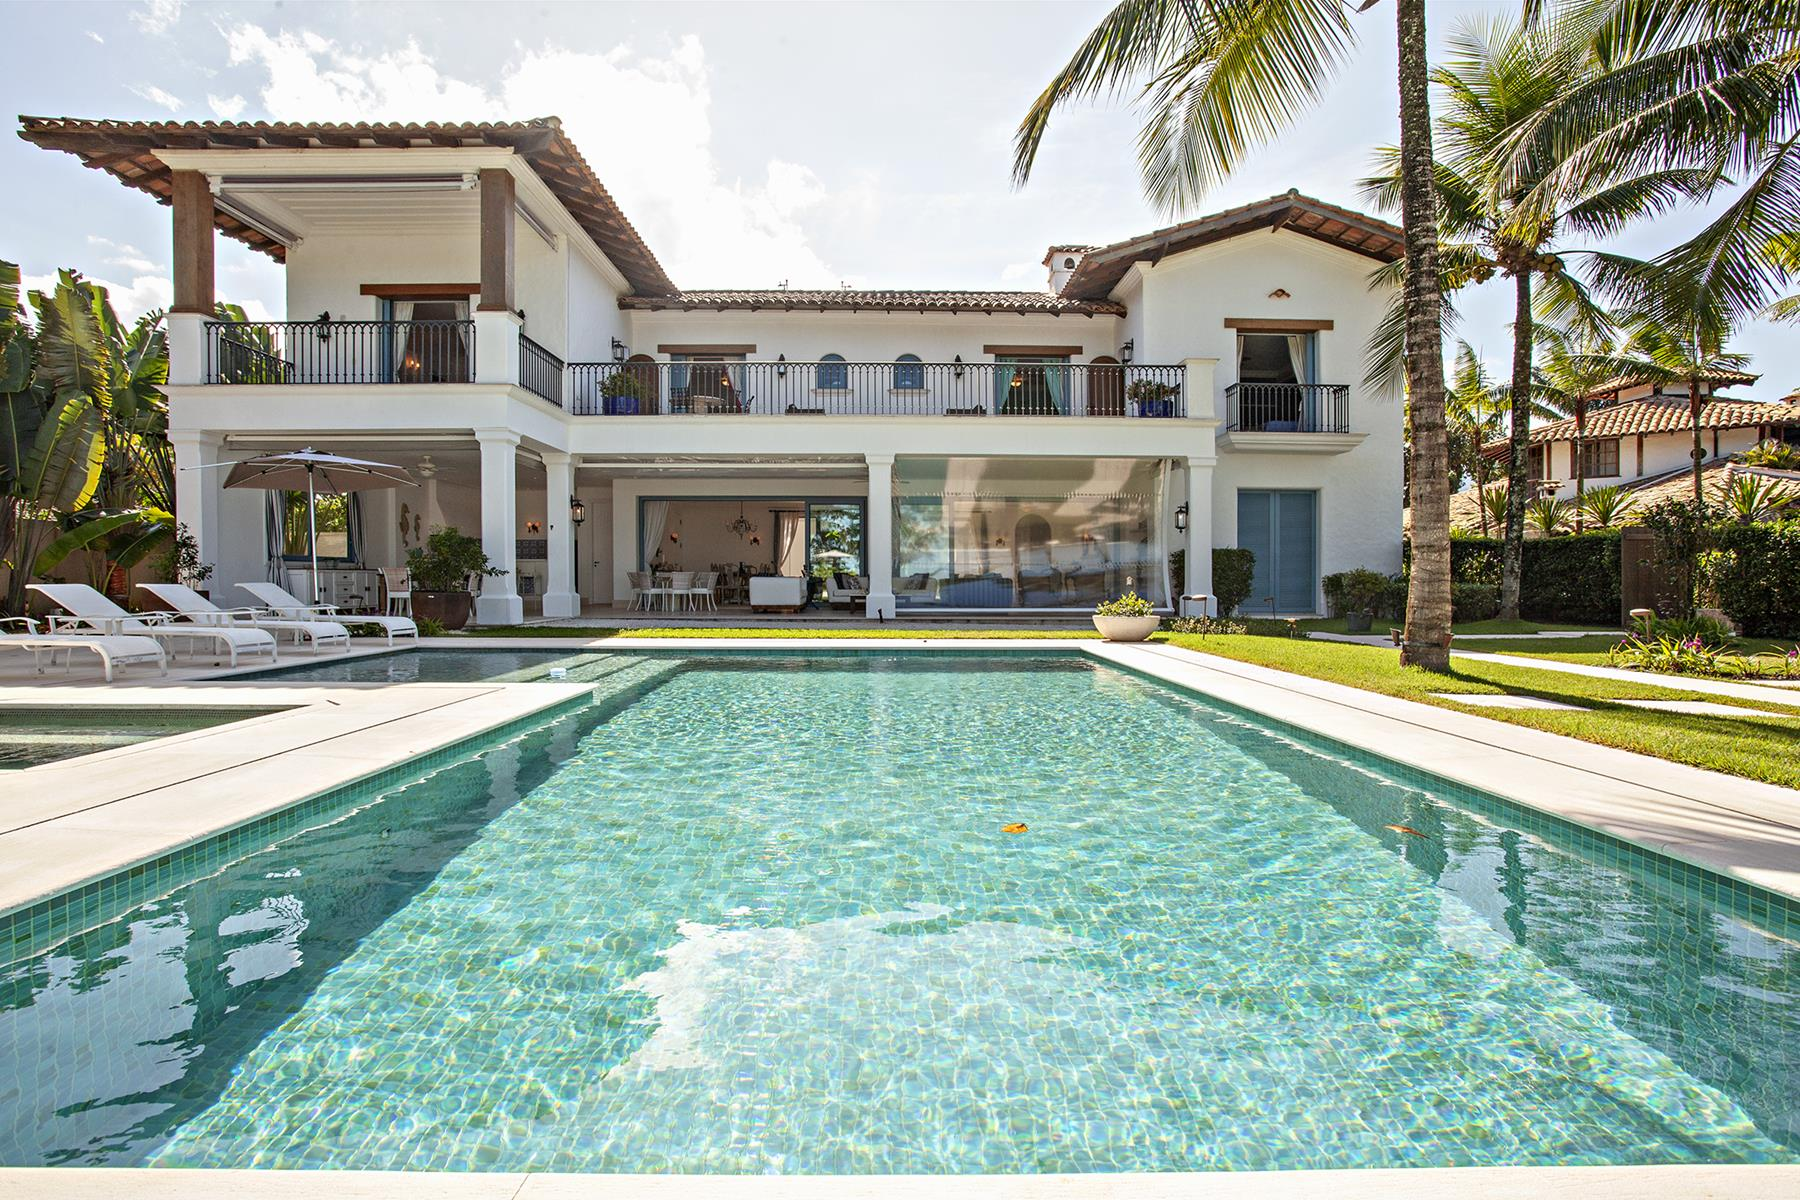 Single Family Home for Sale at House in colonial style Sao Sebastiao, Brazil